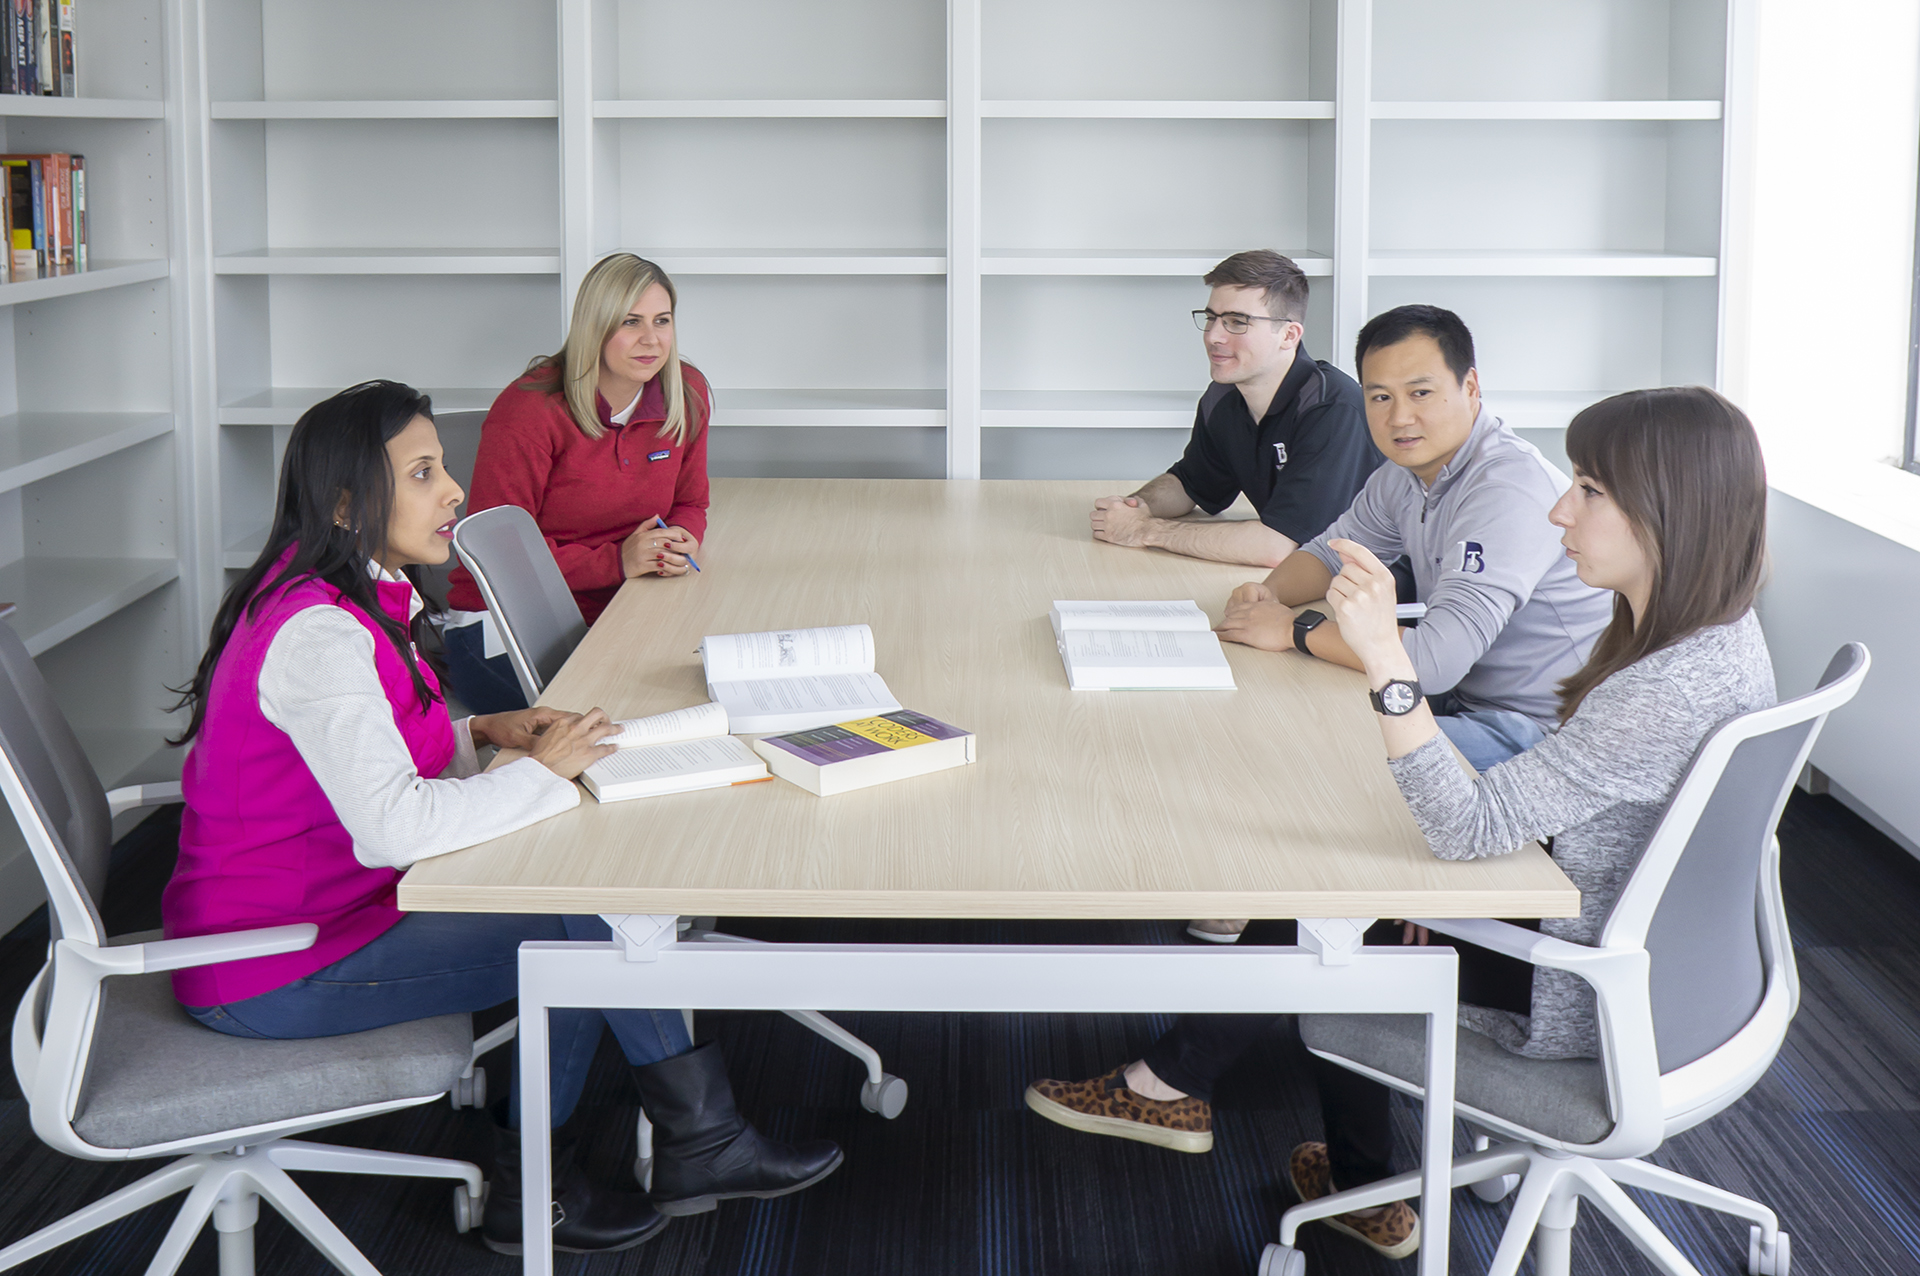 People in an office having a meeting.